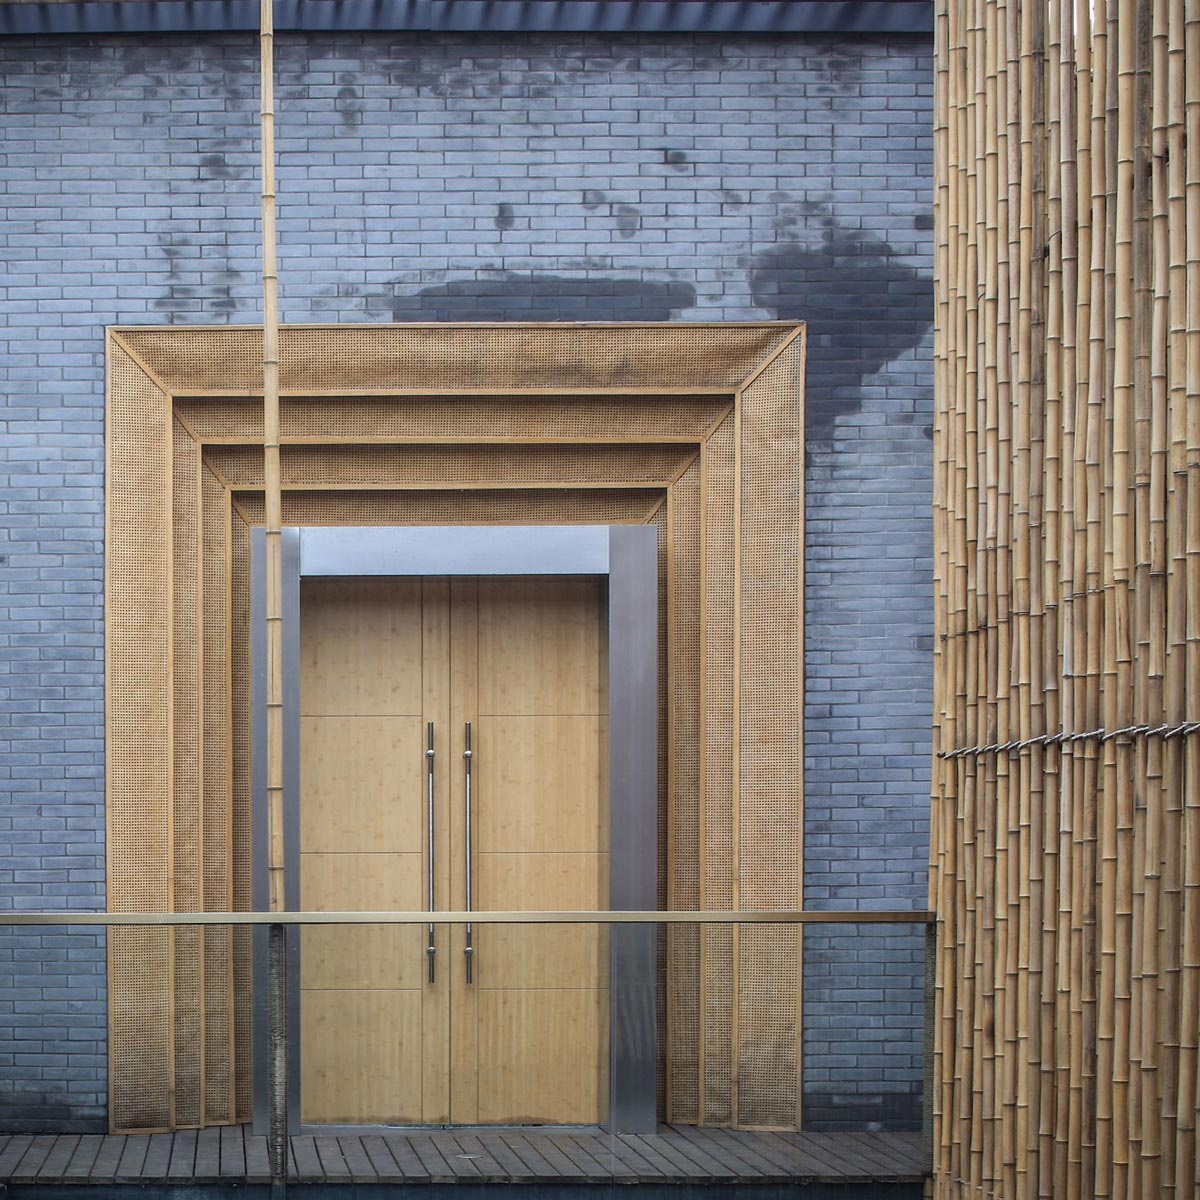 Entrance, Floating Bamboo Courtyard Teahouse in ShiQiao, China